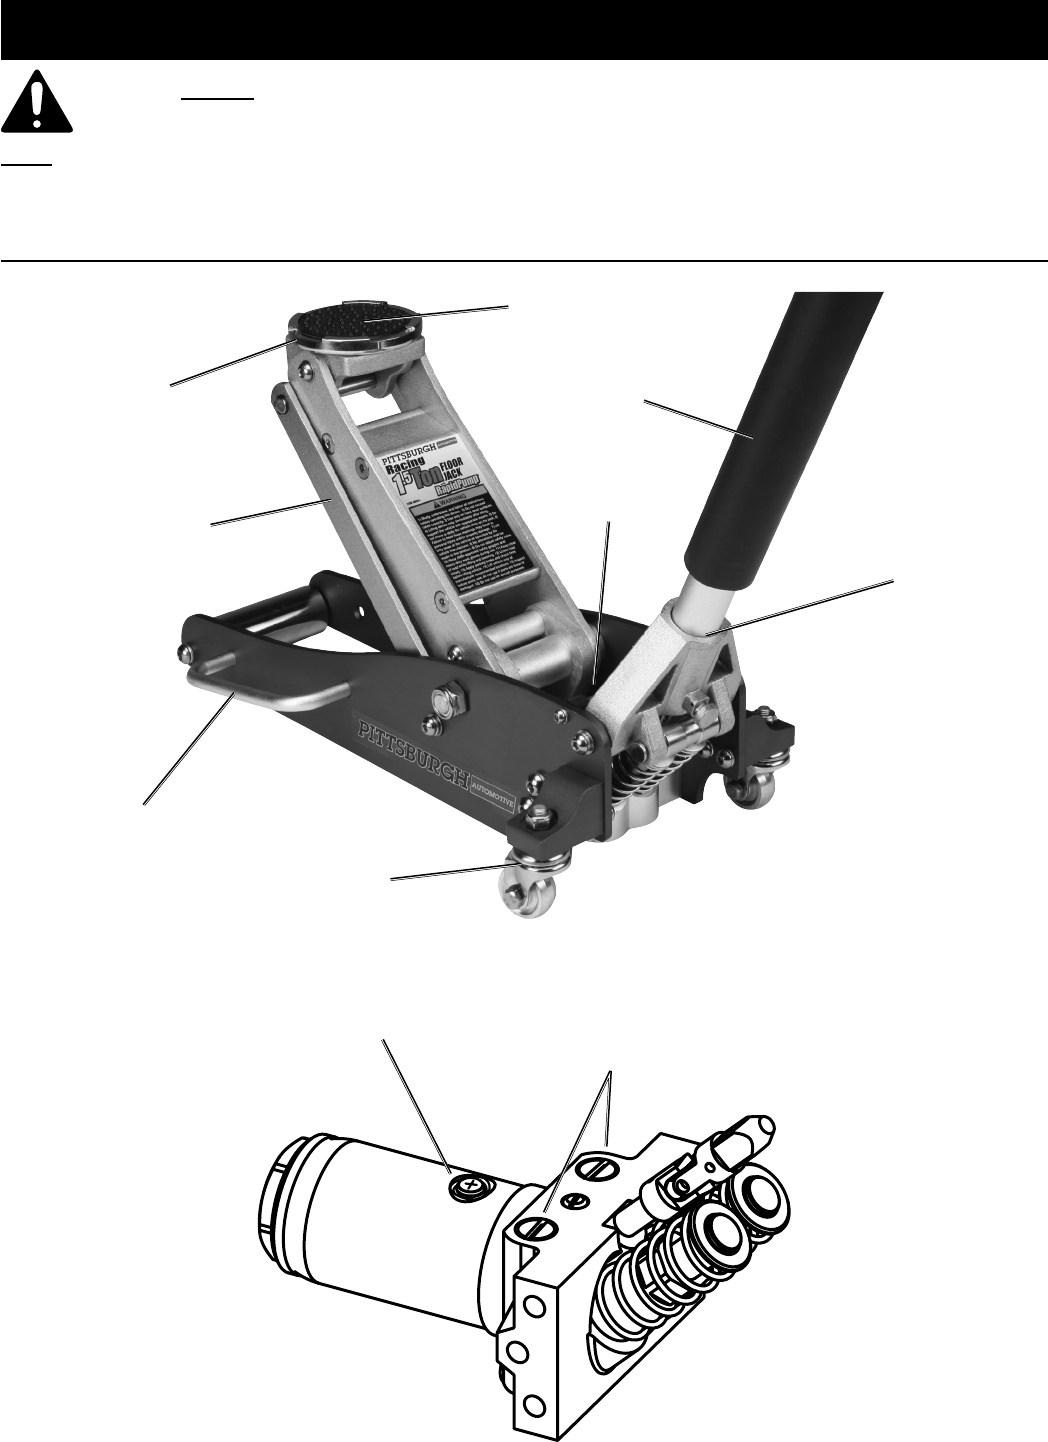 Manual For The 62516 1 5 Ton Compact Aluminum Racing Floor Jack